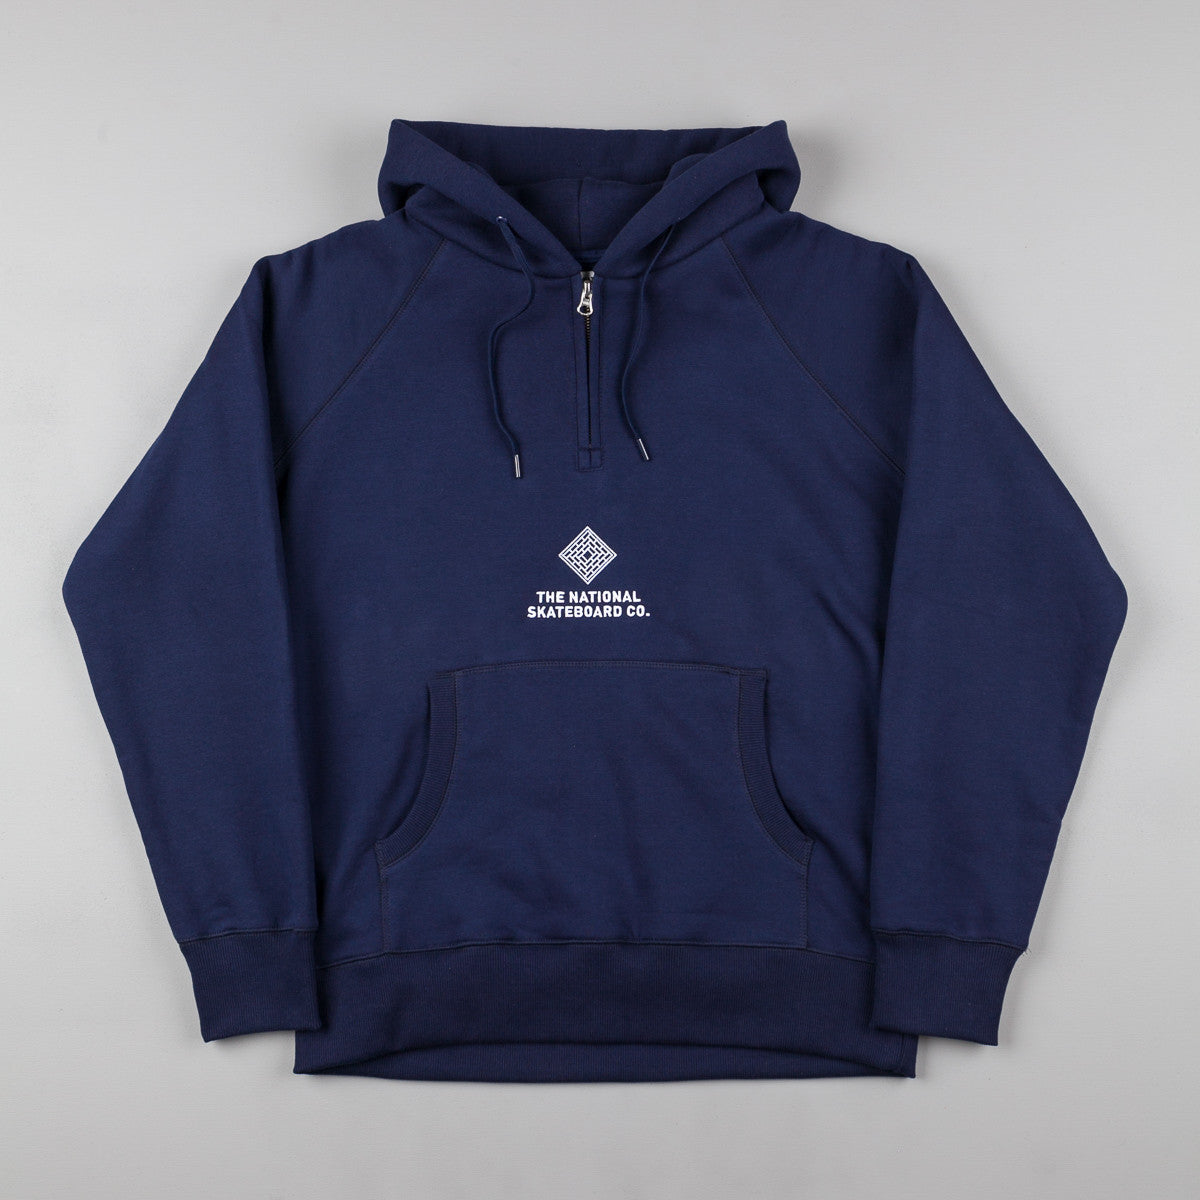 The National Skateboard Co Half-Zip Hooded Sweatshirt - Navy